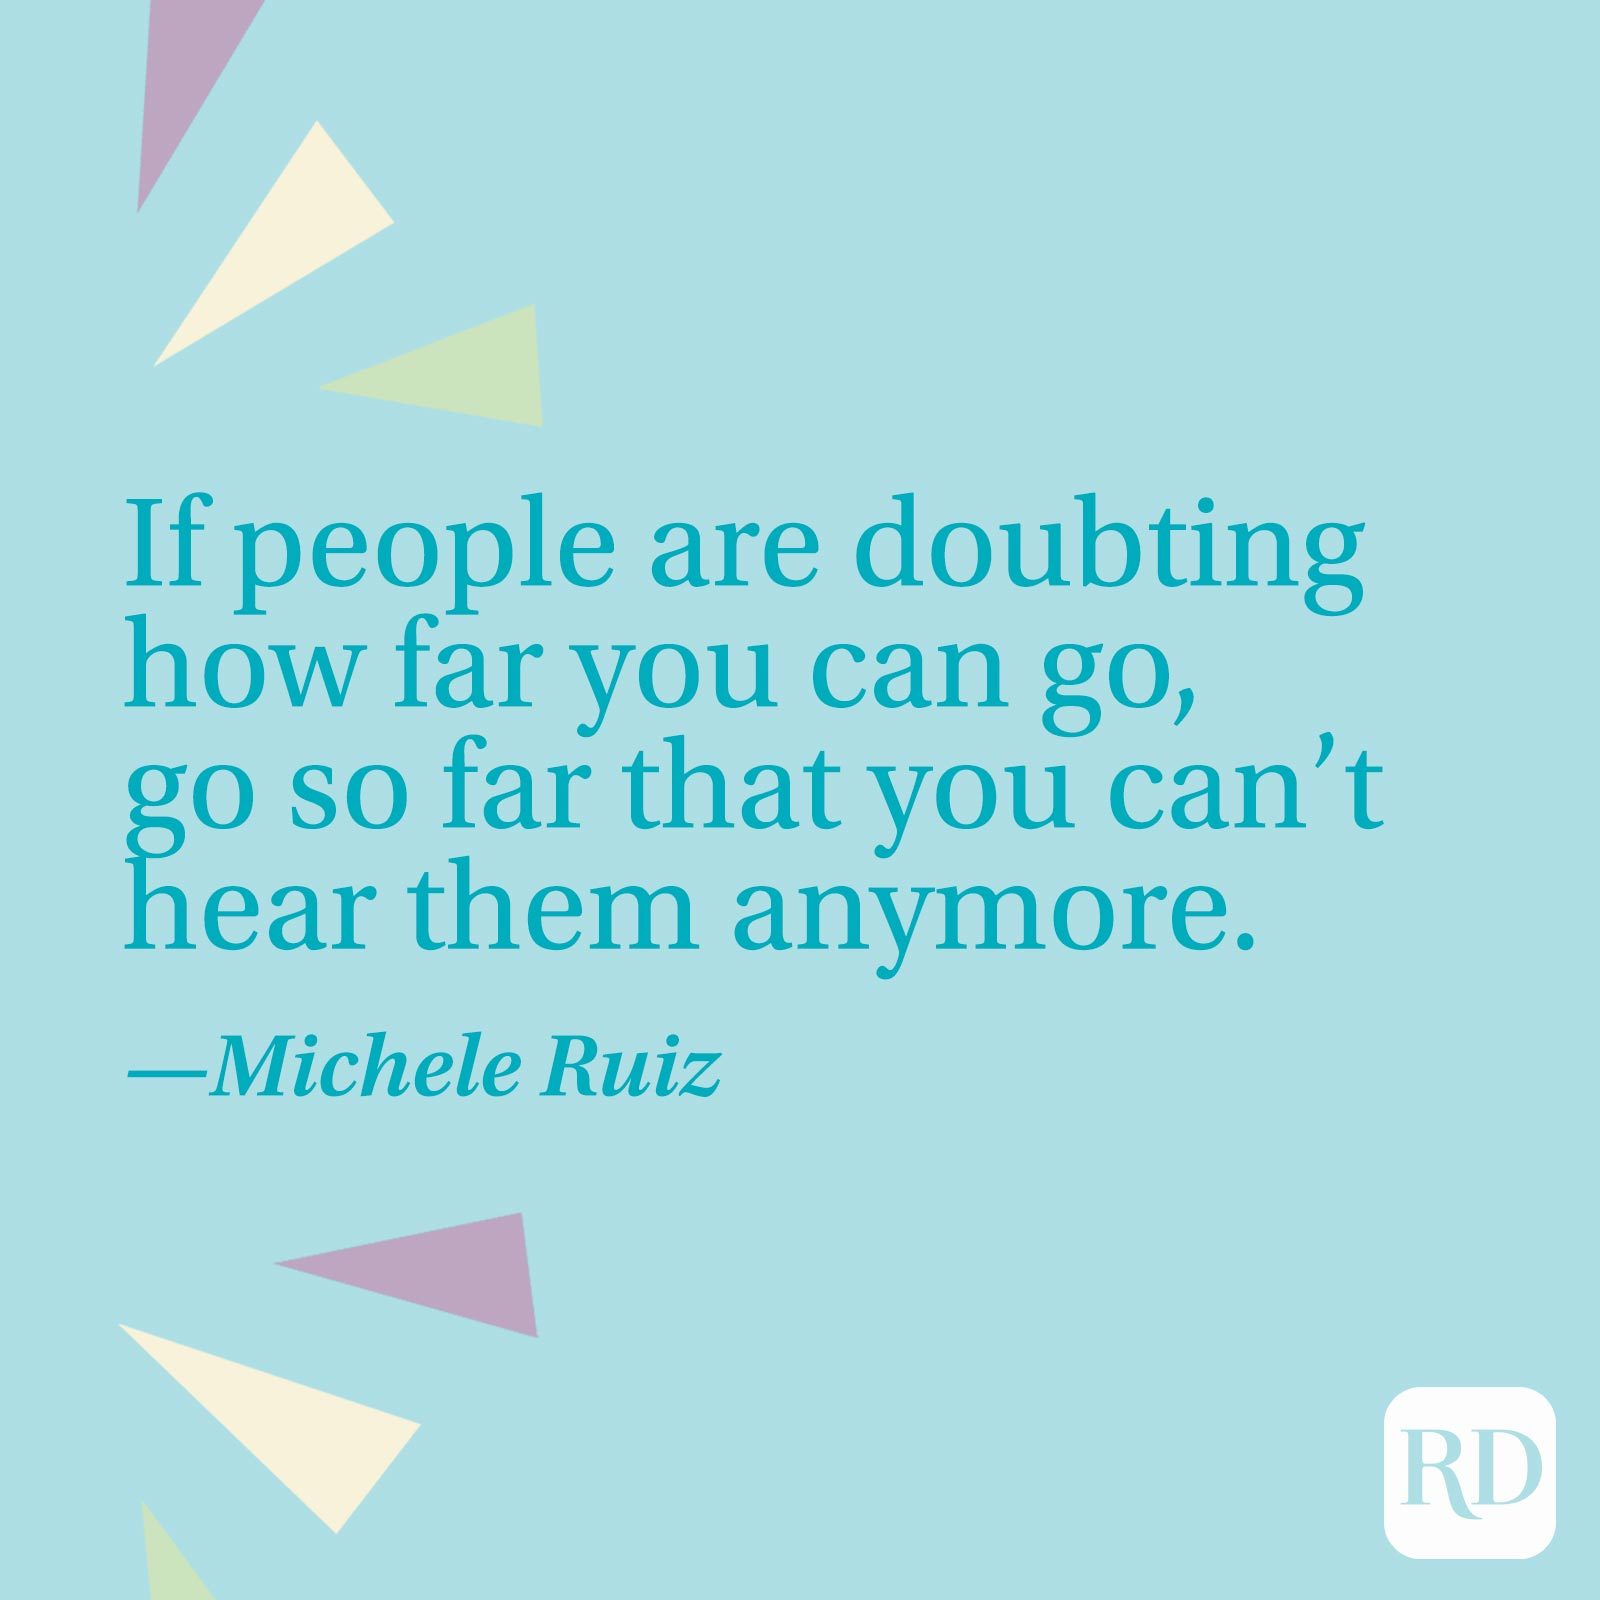 """""""If people are doubting how far you can go, go so far that you can't hear them anymore."""" —Michele Ruiz"""